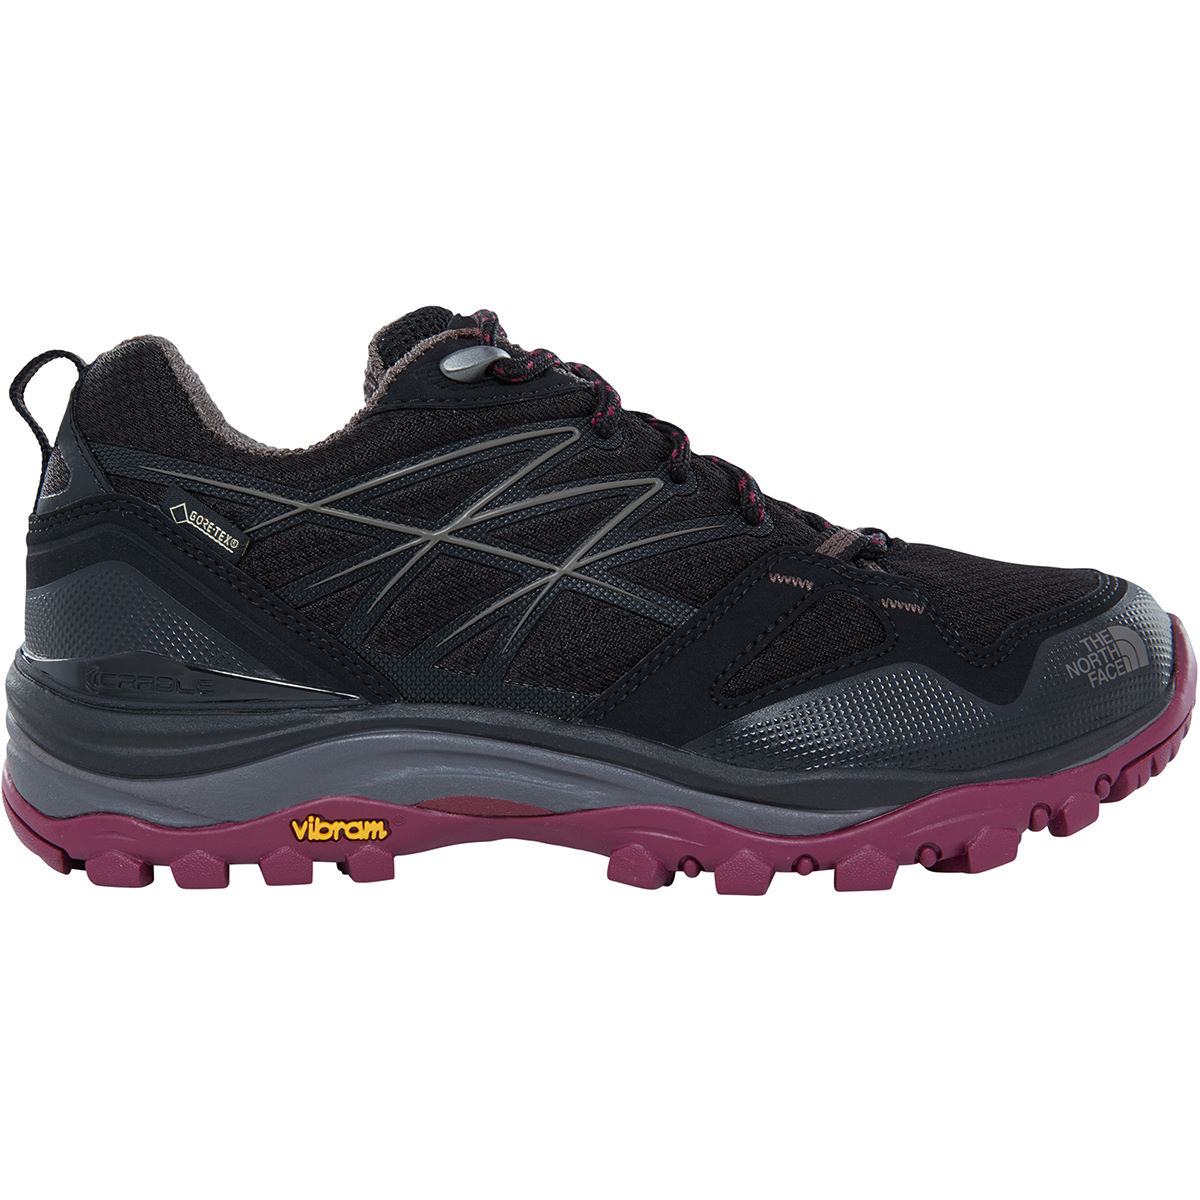 Chaussures Femme The North Face Hedgehog Fastpack Gore-Tex - 4.5